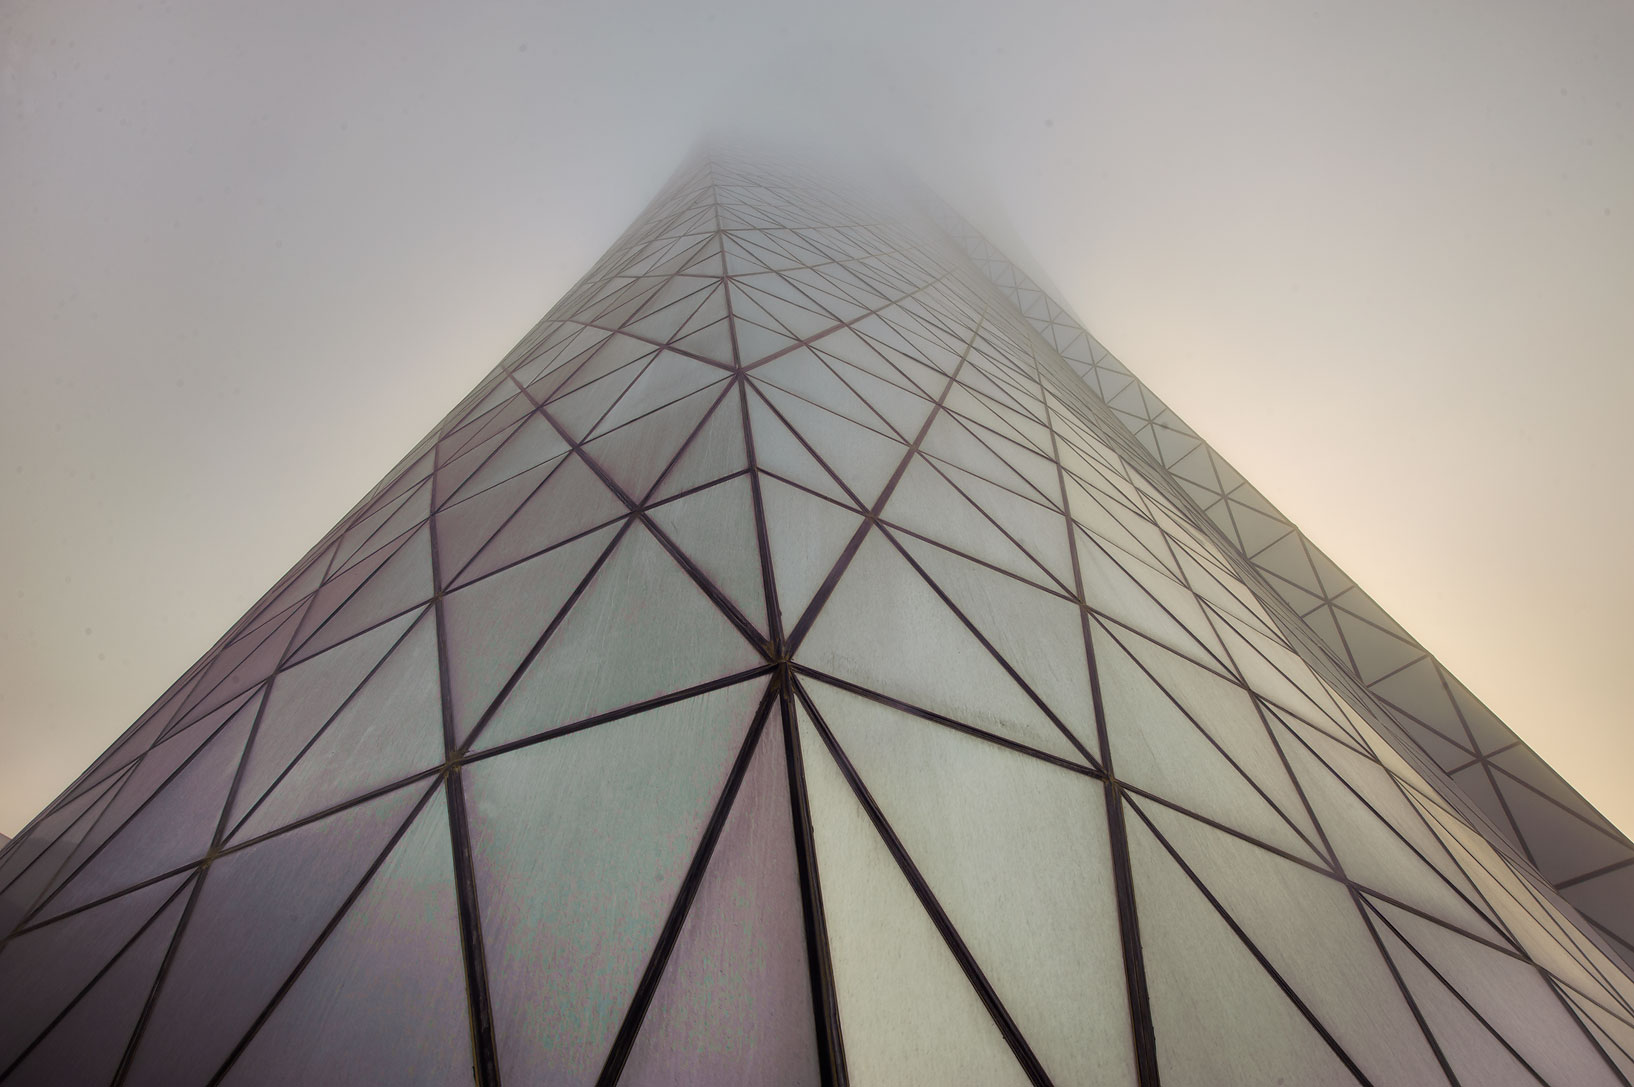 Foot of Al Bidda Tower in West Bay in fog, looking up. Doha, Qatar